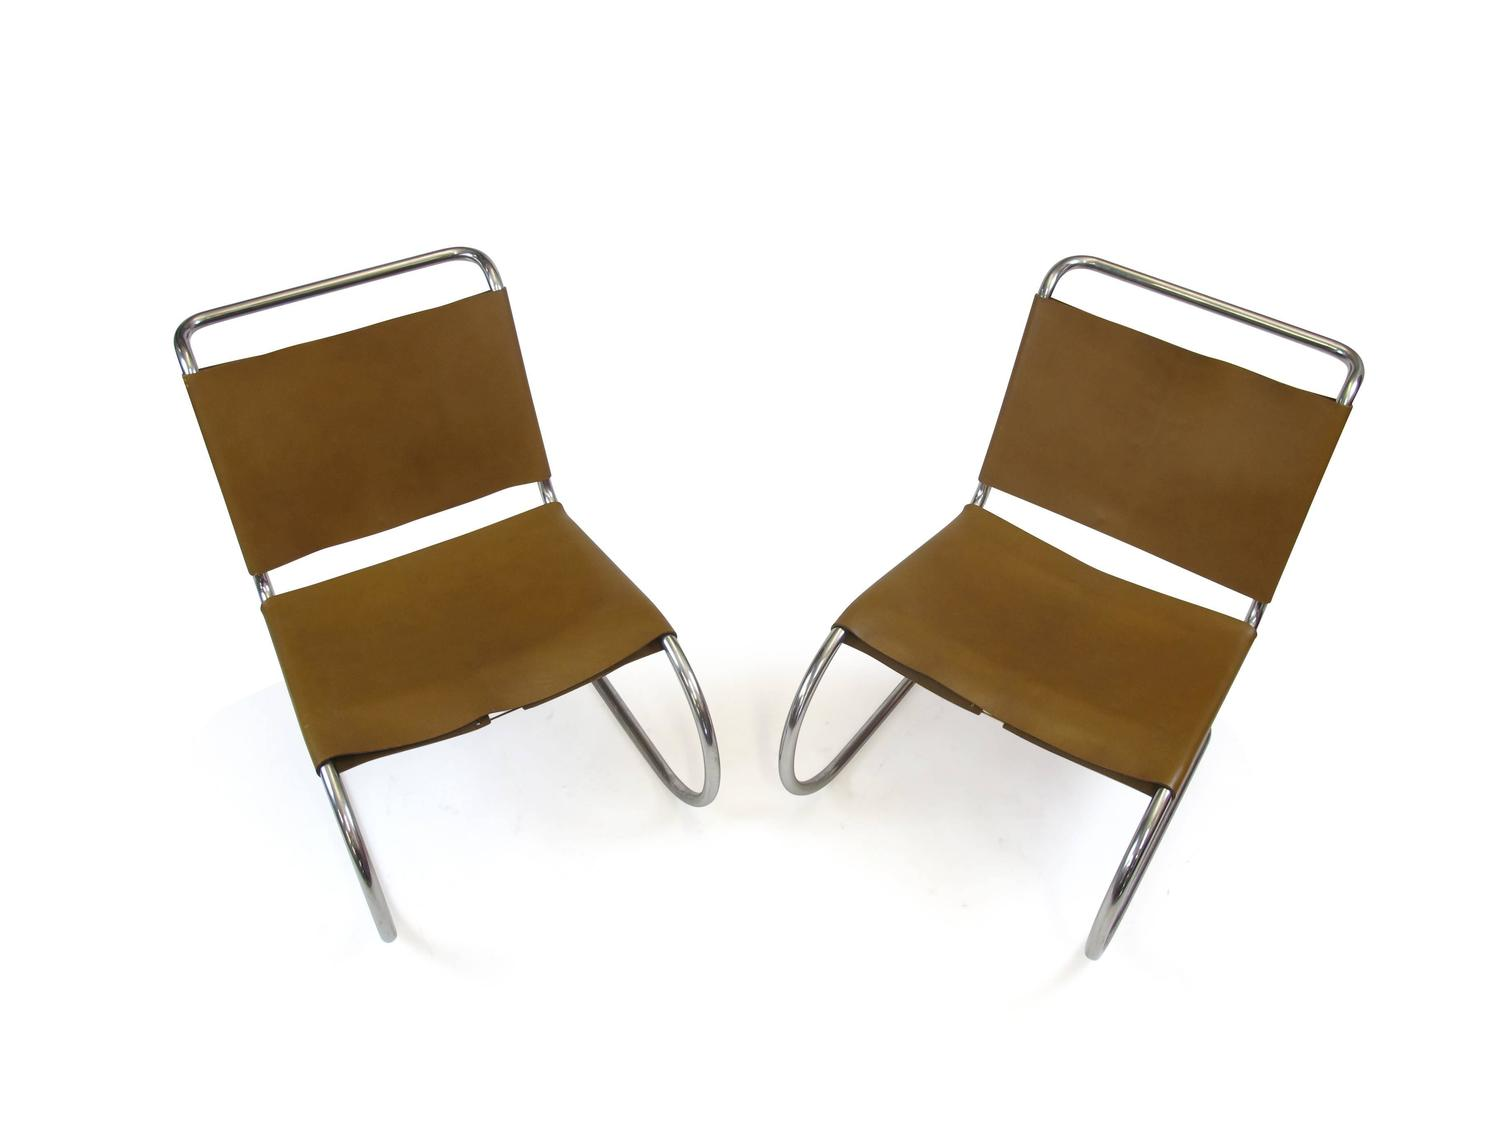 mies van der rohe mr lounge chairs for knoll at 1stdibs